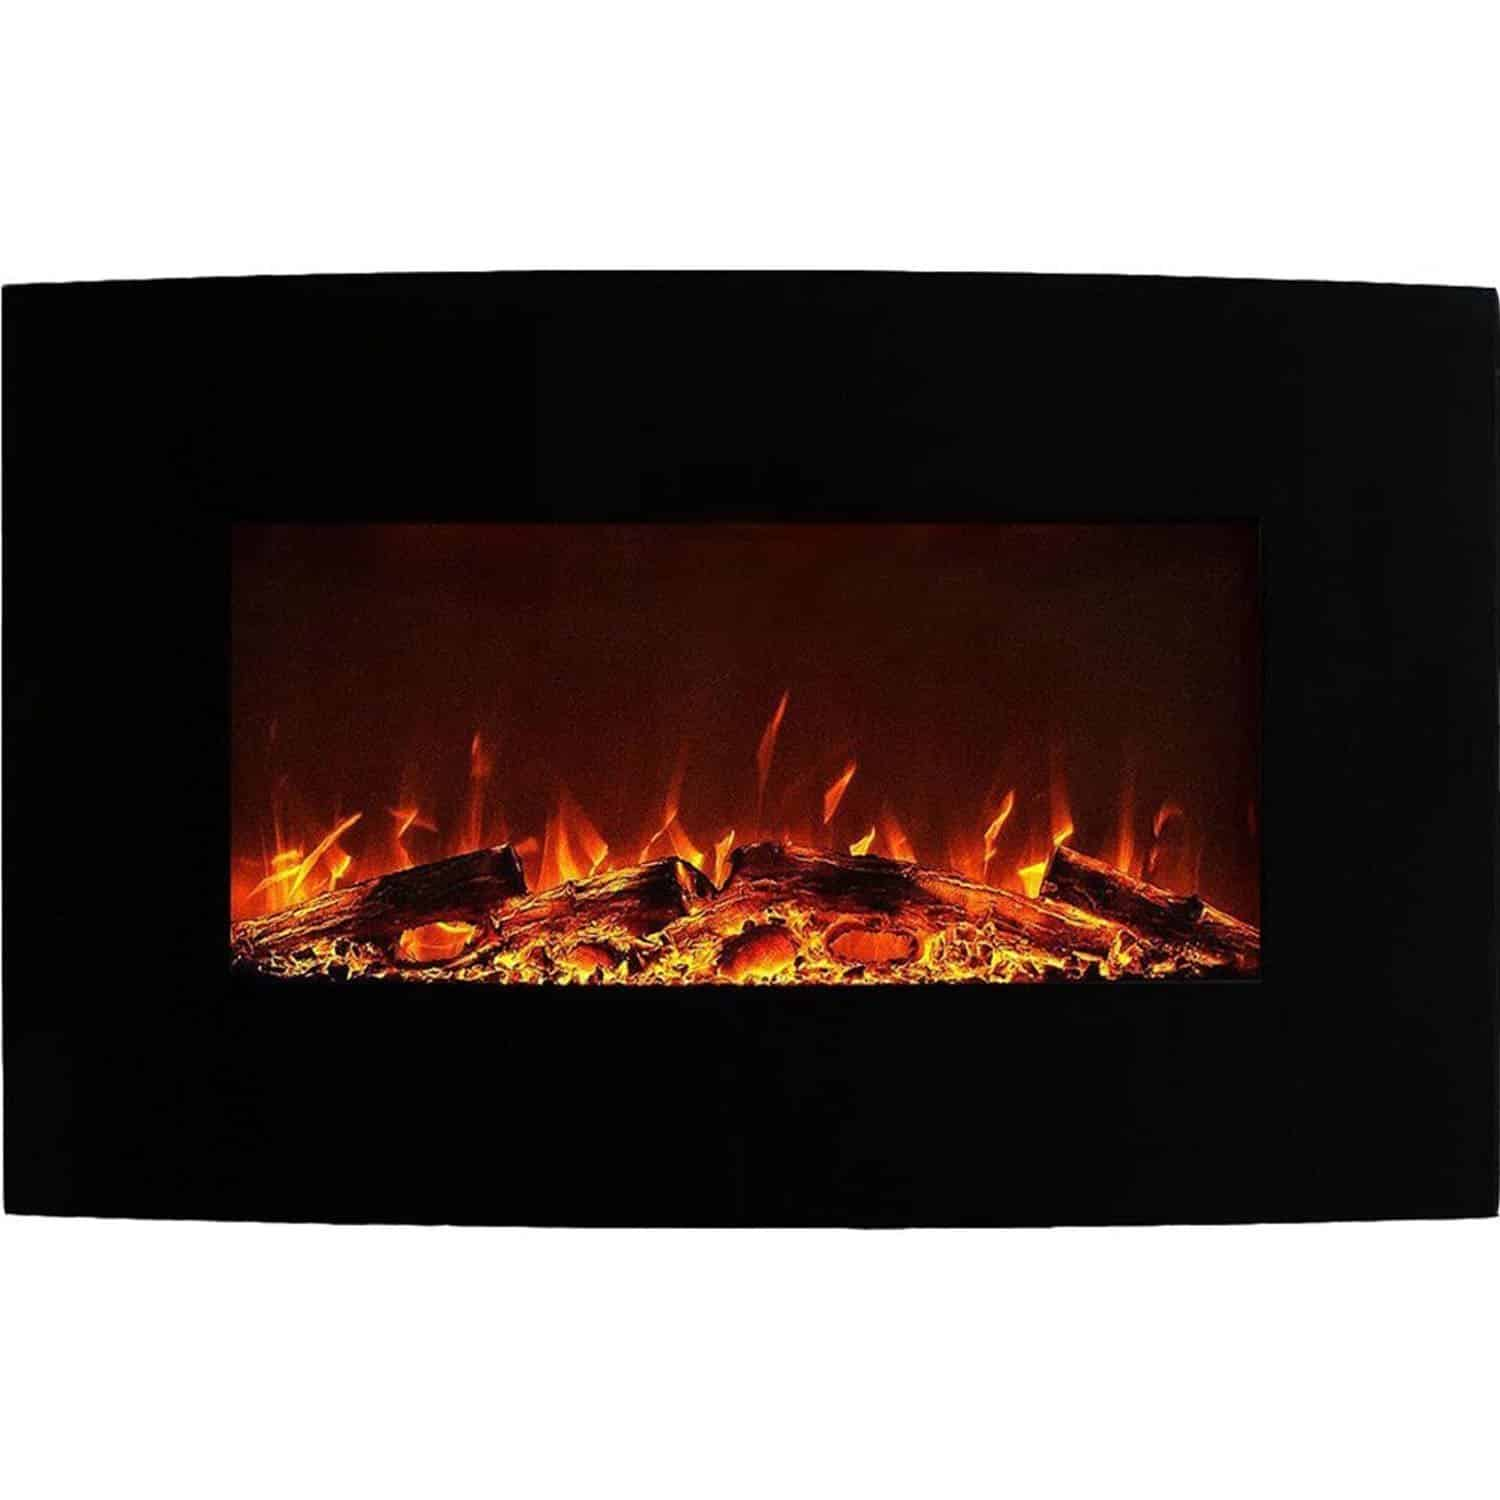 Curved Electric Fireplace Neptune 35 Inch Curved Black Wall Mounted Electric Fireplace